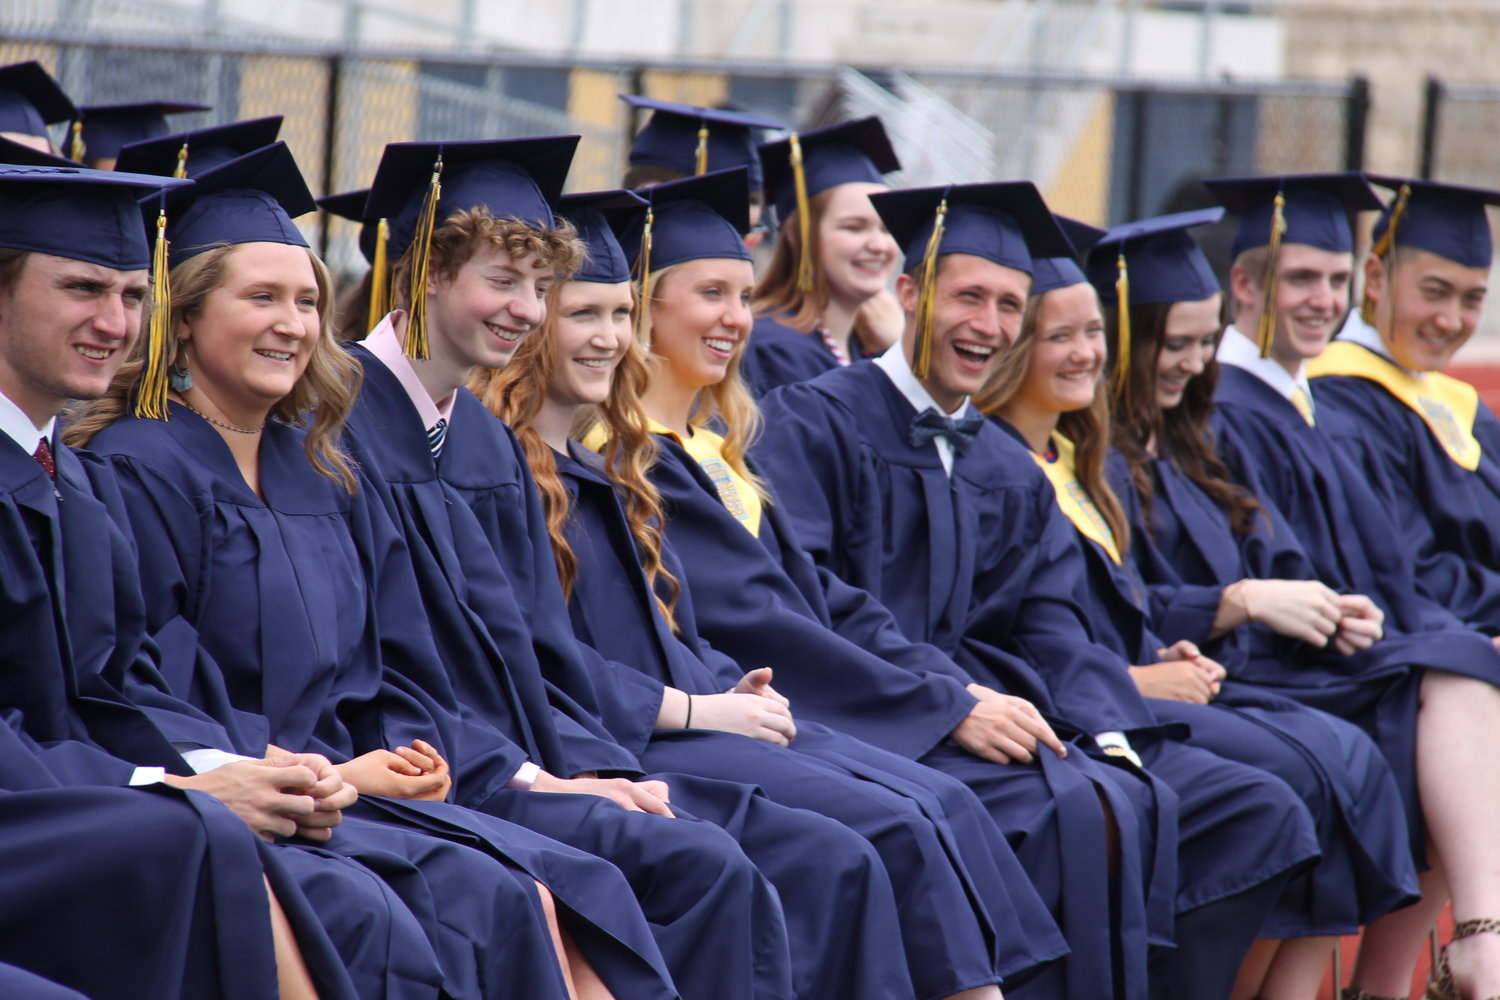 Graduating seniors of Helias Catholic High School listen to graduation speaker Pat Seifert during their Commencement ceremony.